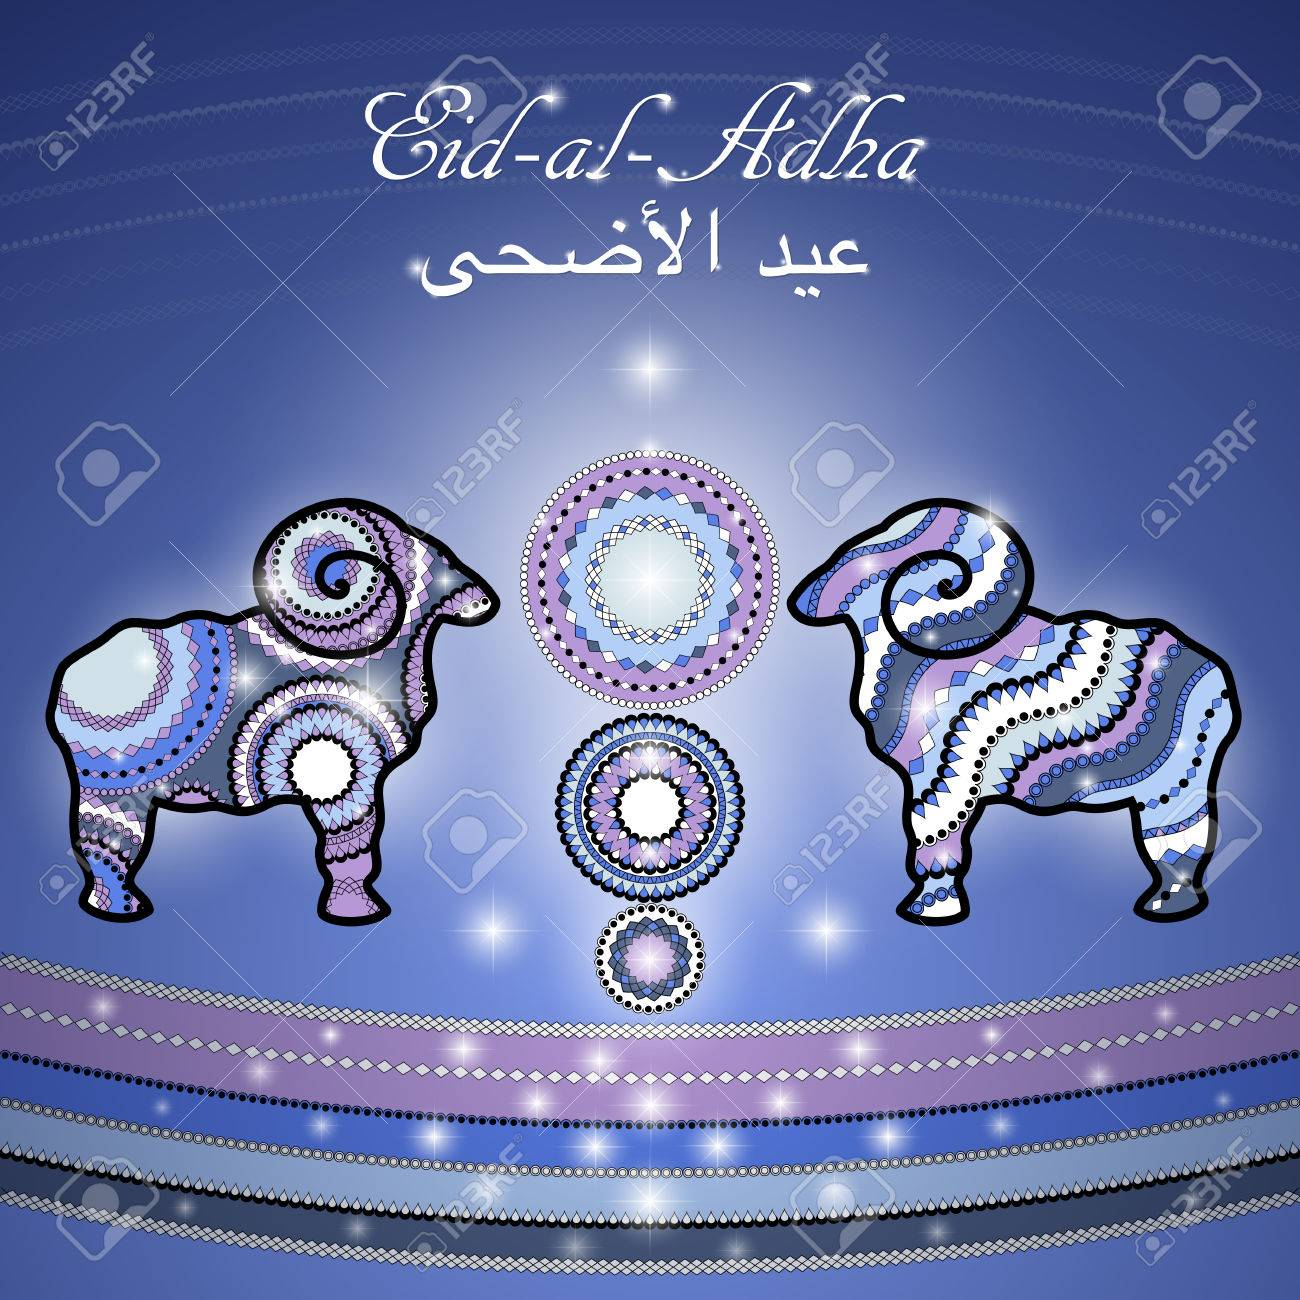 Greeting card template for muslim community festival of sacrifice greeting card template for muslim community festival of sacrifice eid al adha with sheep kristyandbryce Images